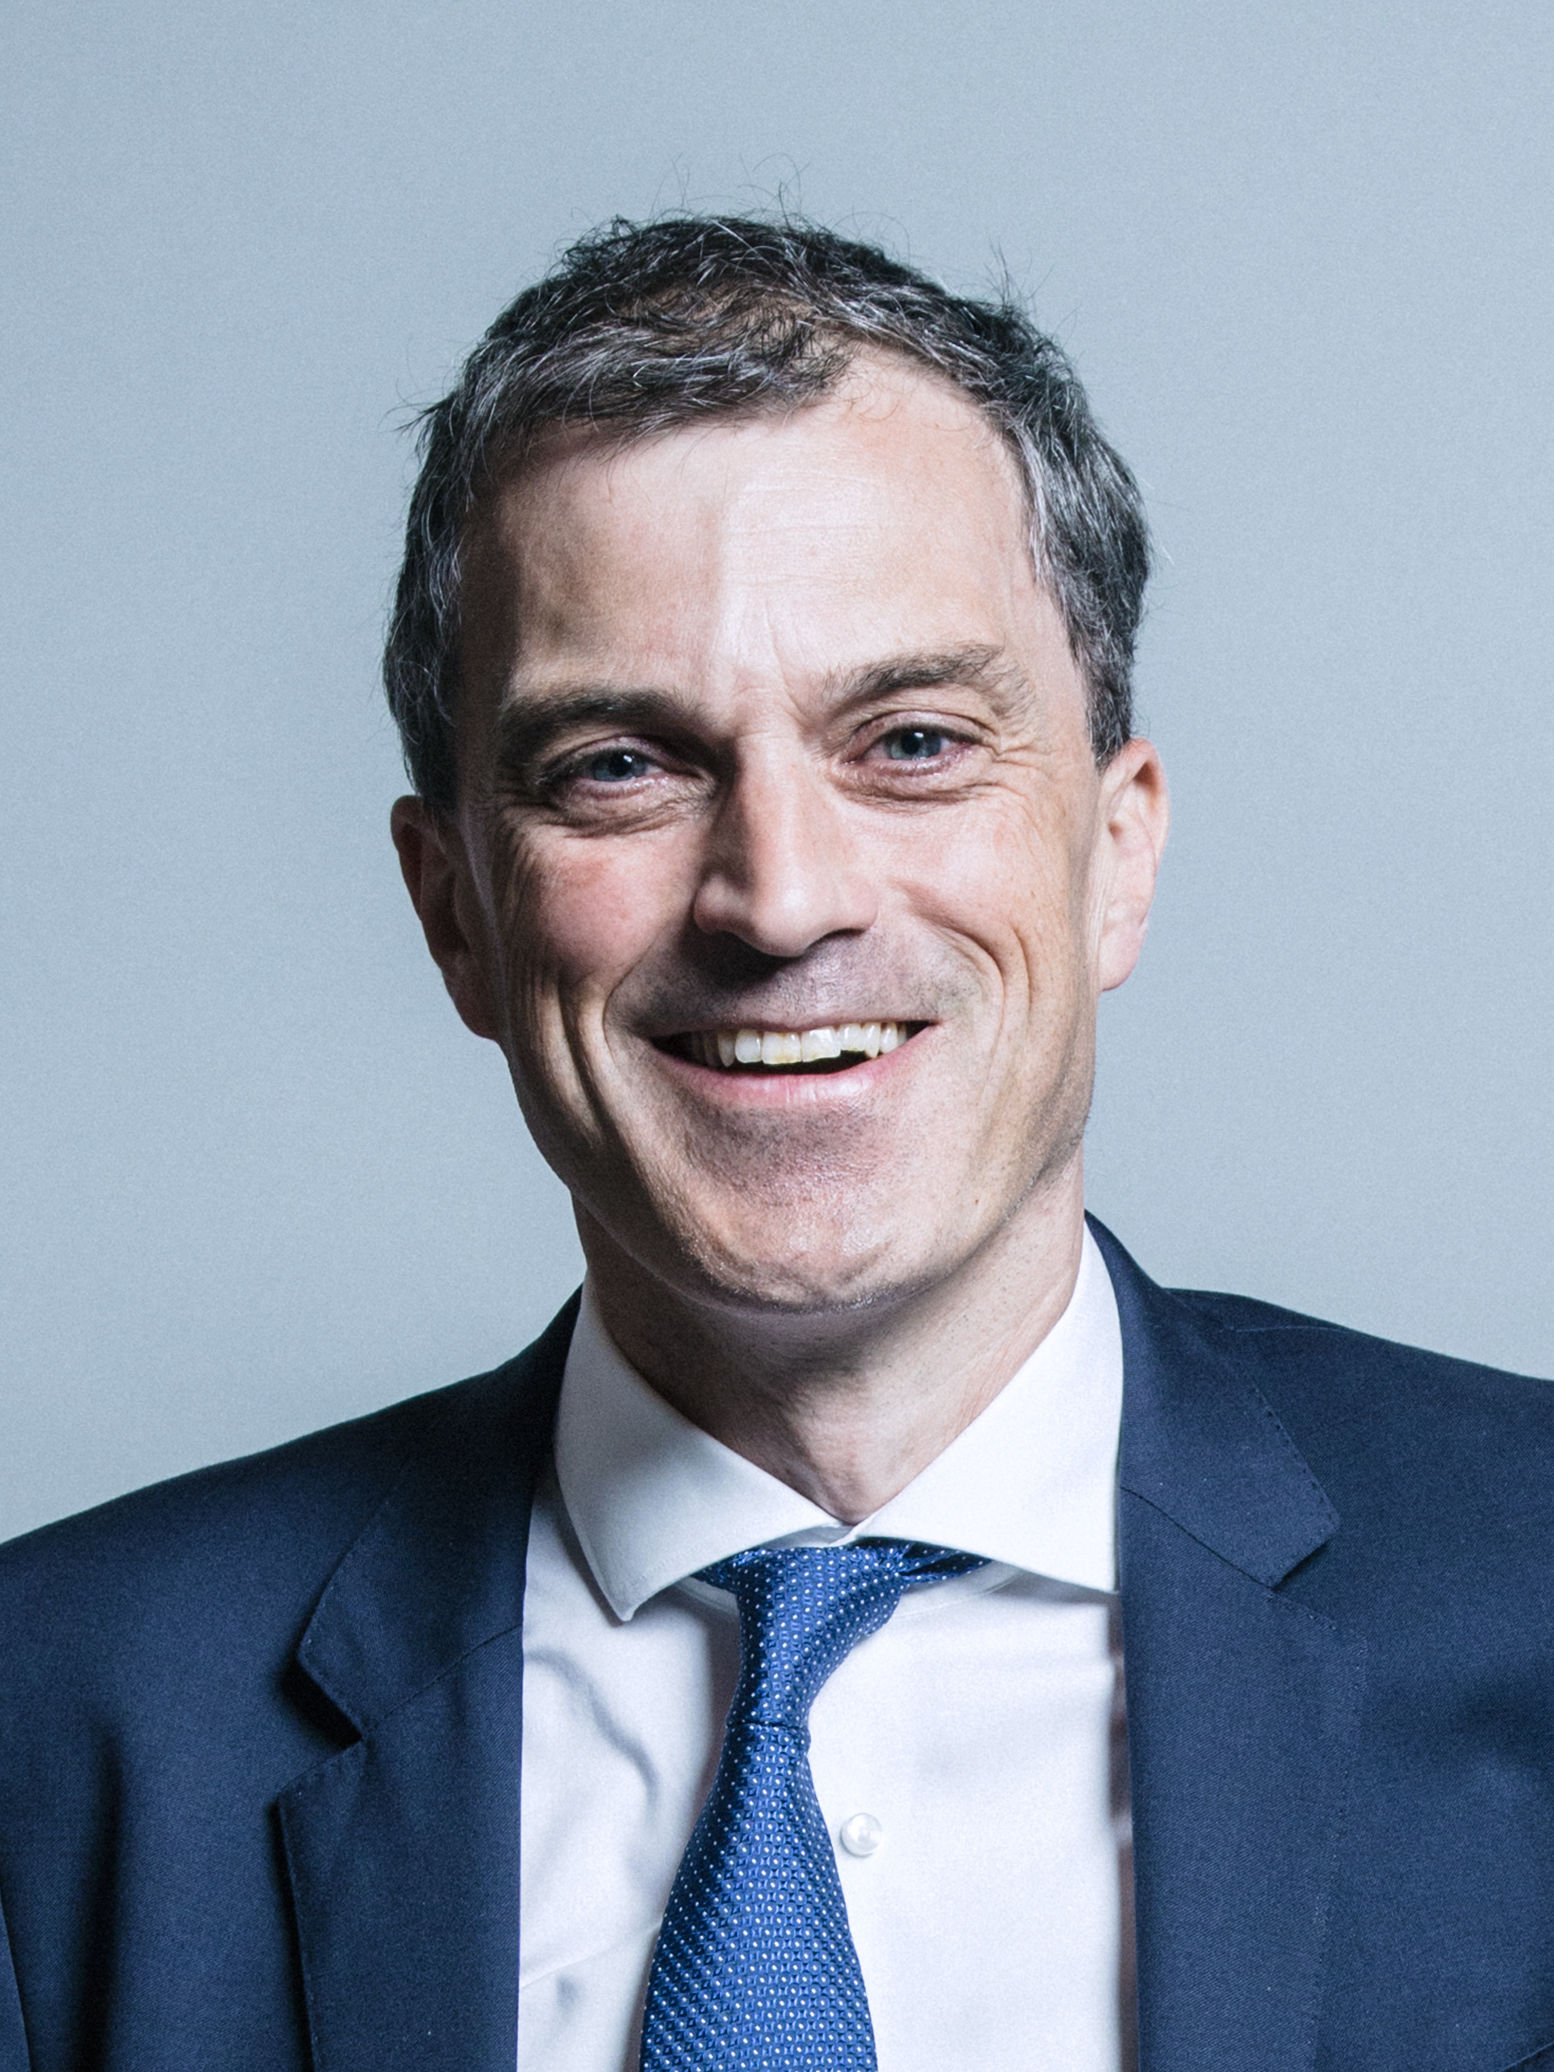 Official Portrait Of Julian Smith Crop 2